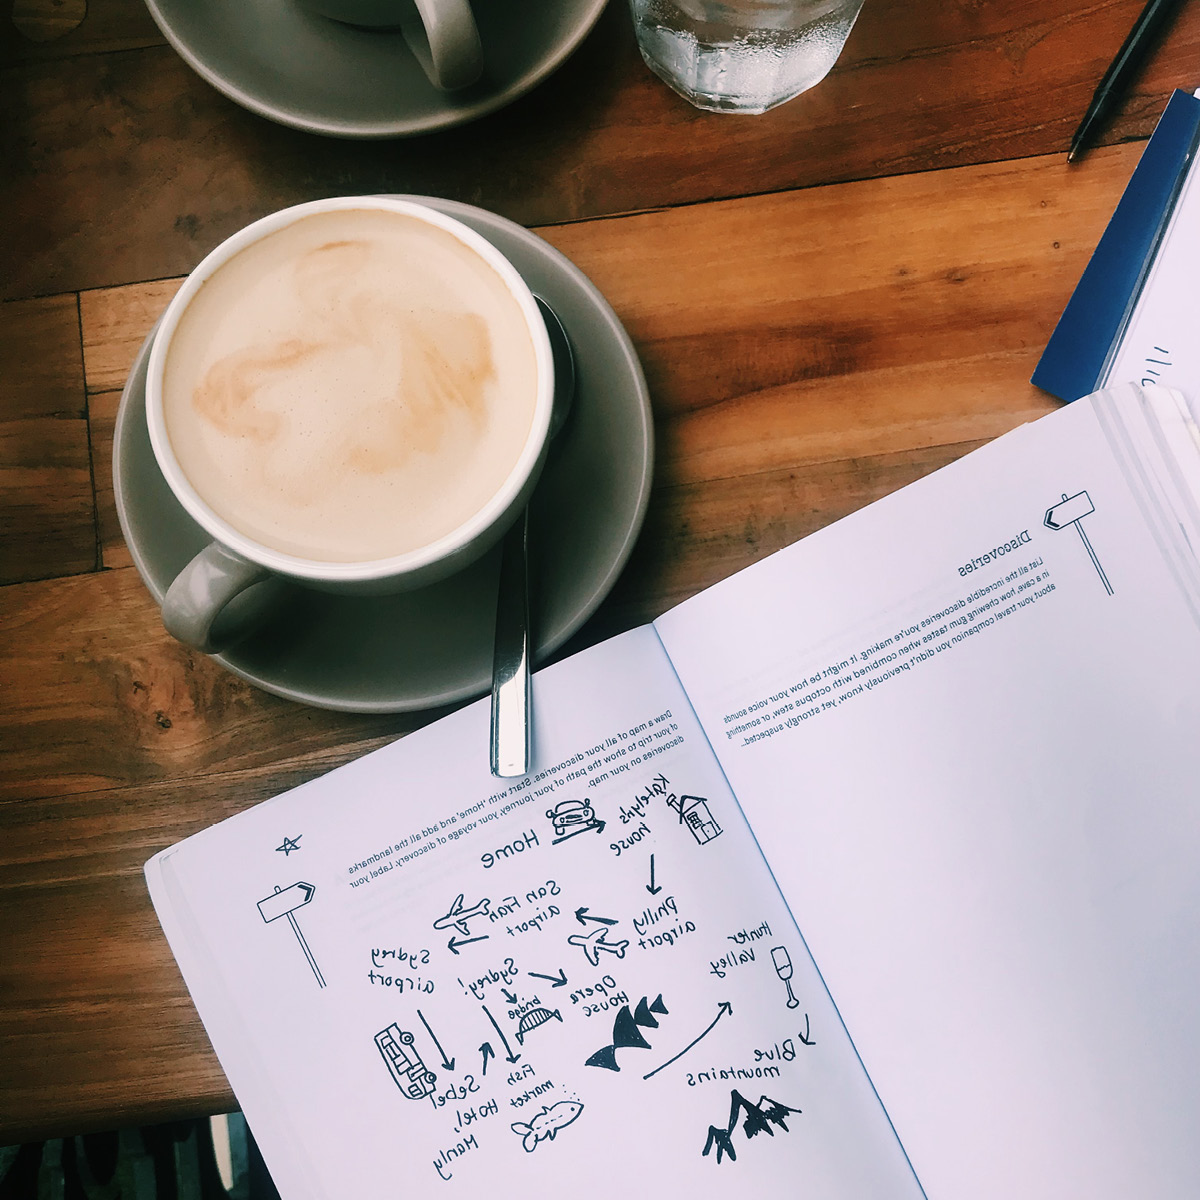 A photo of a travel journal sitting on top of a table with a cup of coffee.